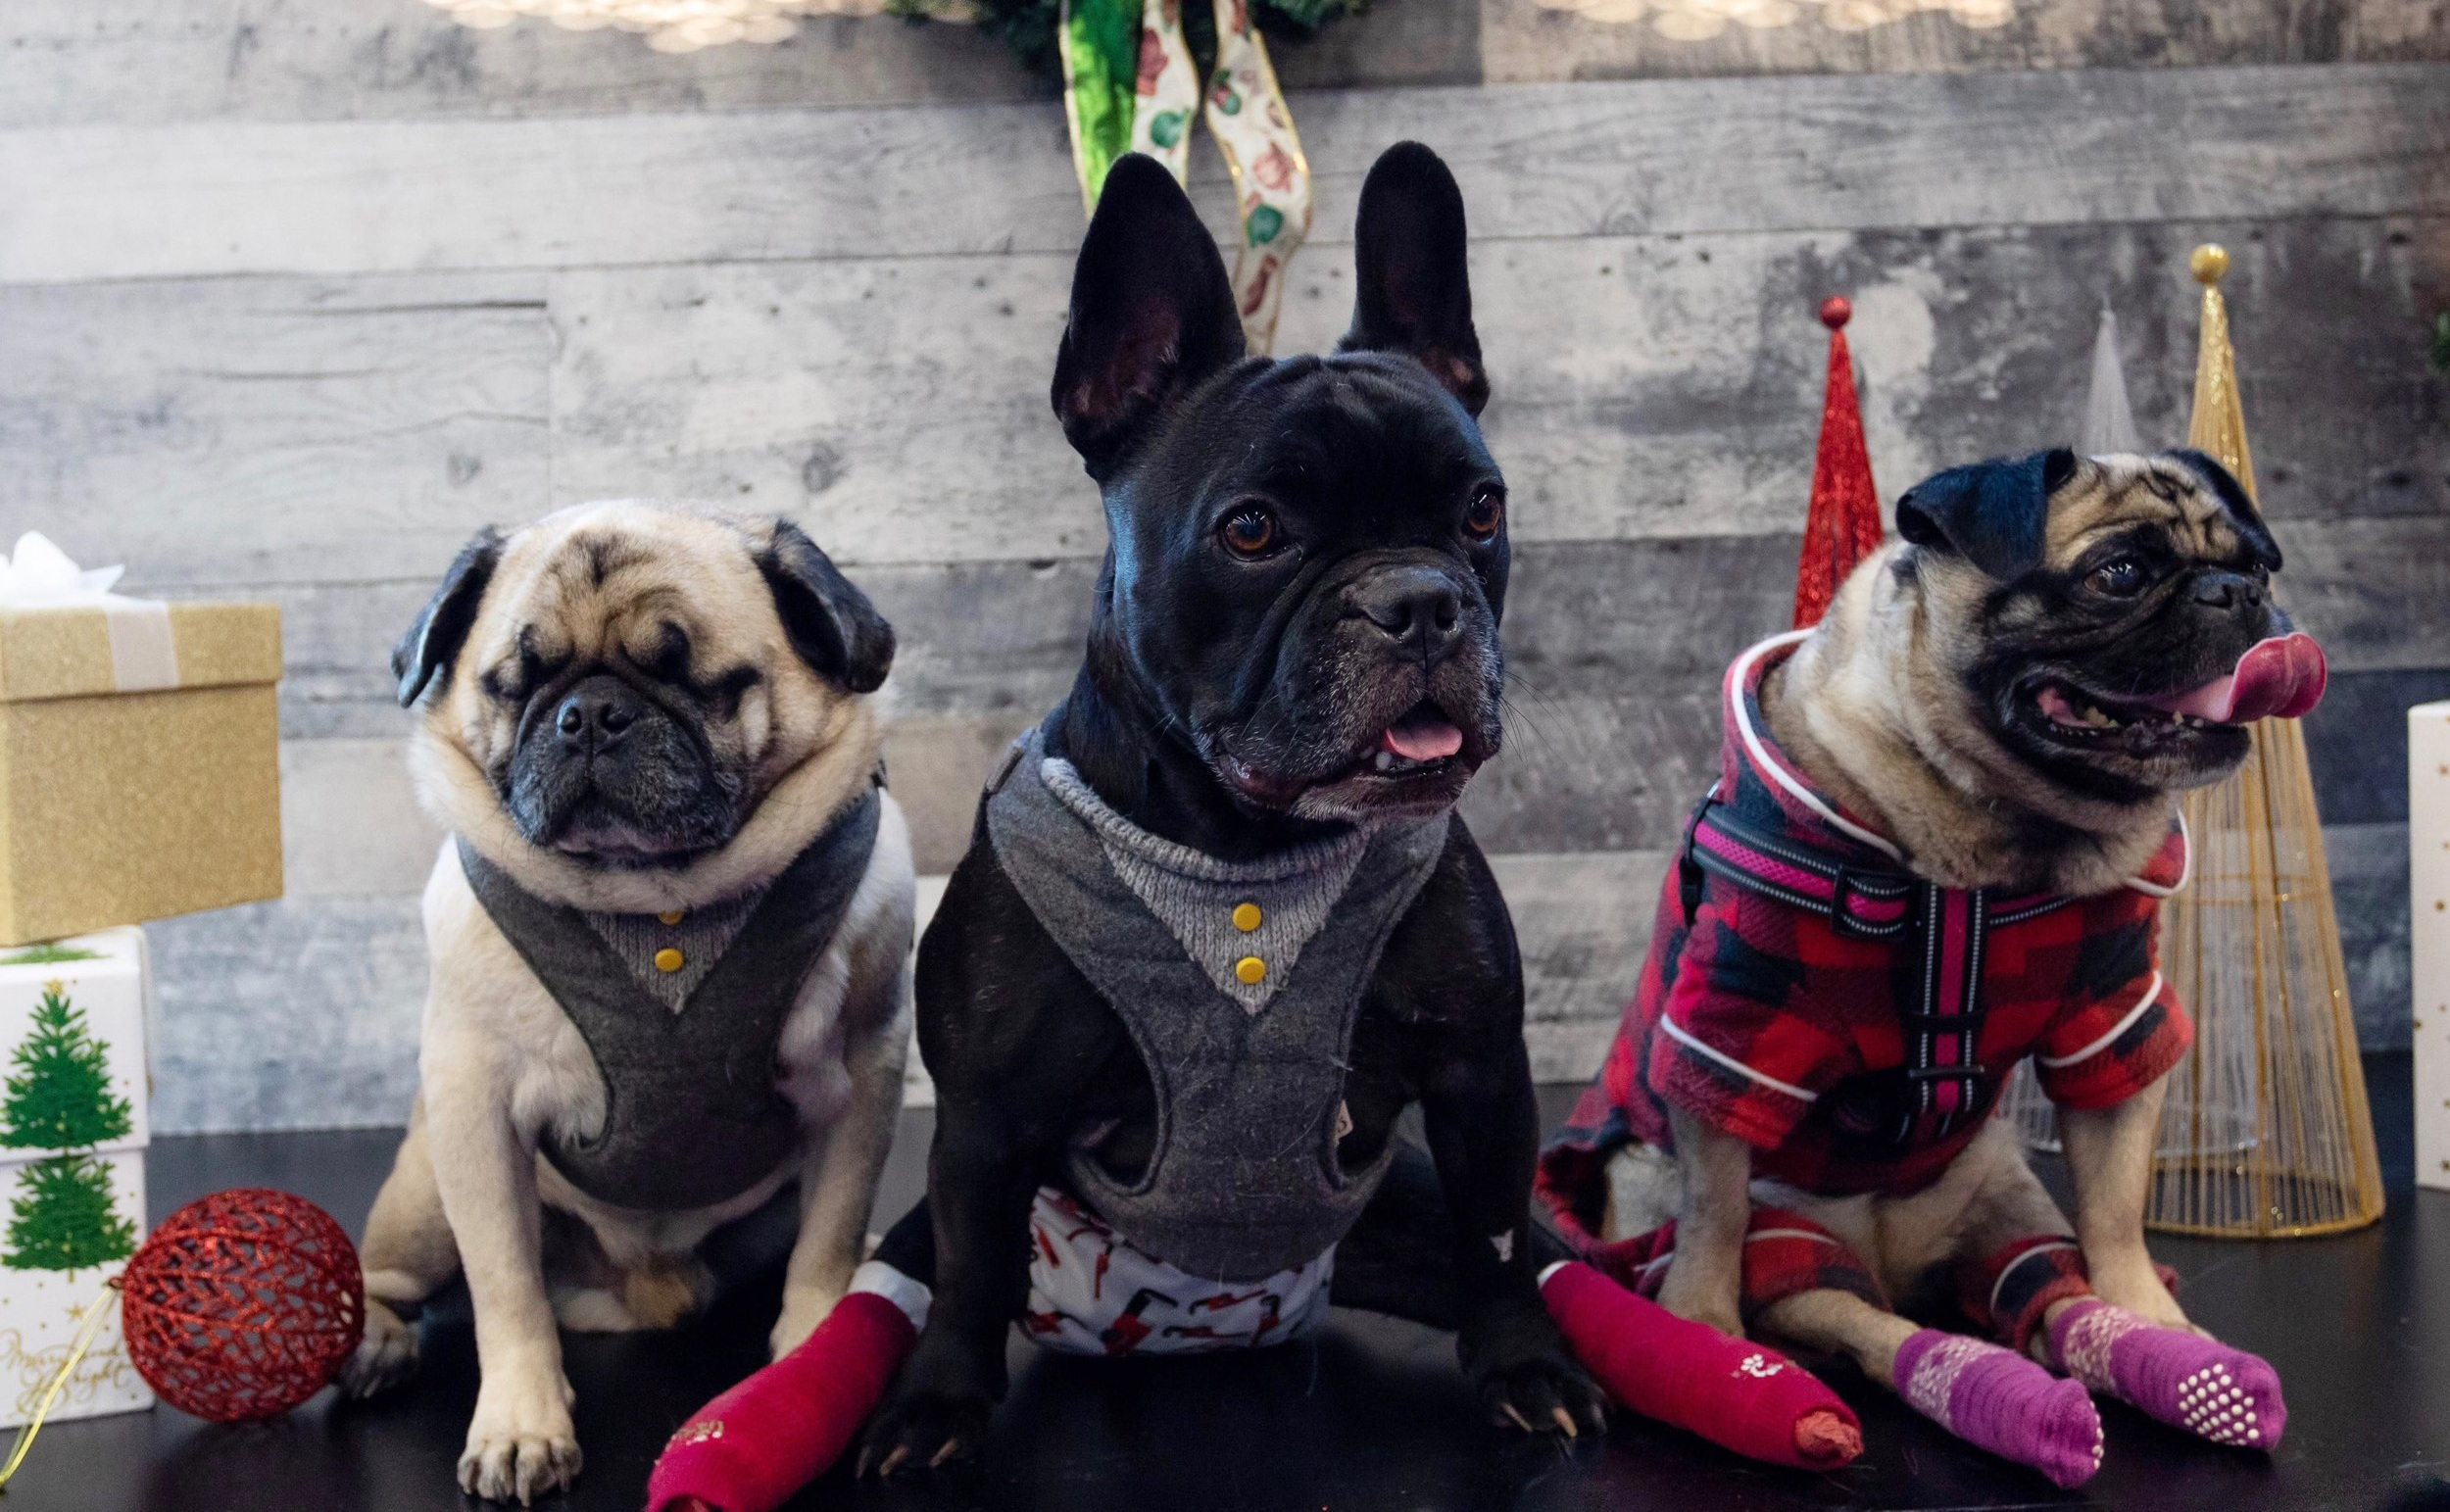 Meeka (right) with her foster brother Diesel (middle) and her K9 Crusader rescue pug friend Maxy Man (left)